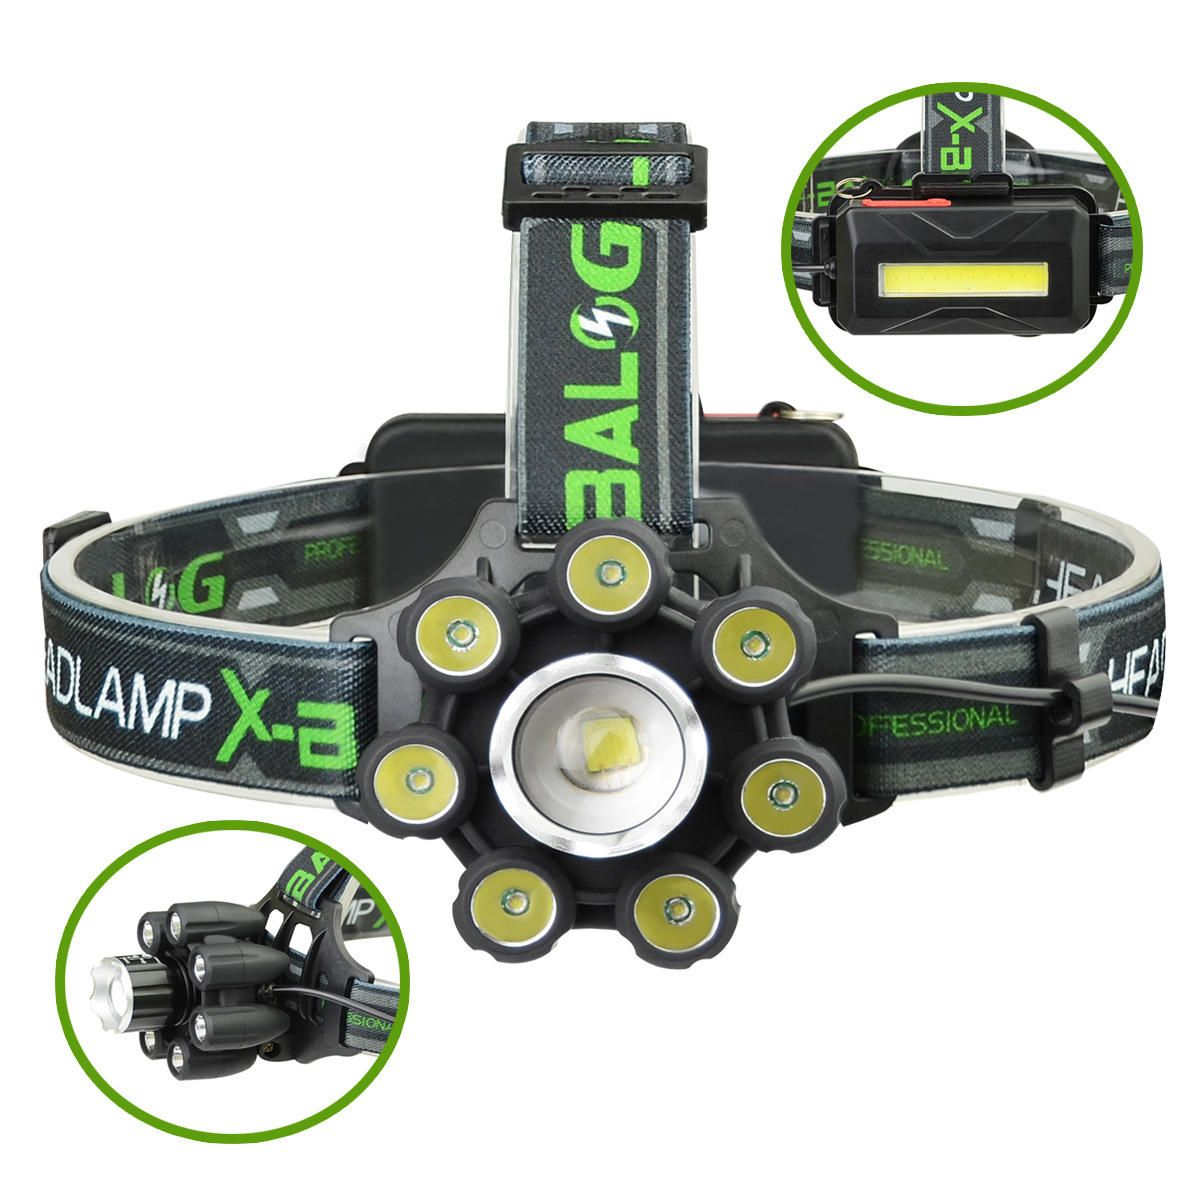 XANES BL T88 B6 3350LM T6 7XPE 6 Modes Telescopic Zoom Cycling Hunting Camping Outdoor LED Headlamp USB Charging Interface